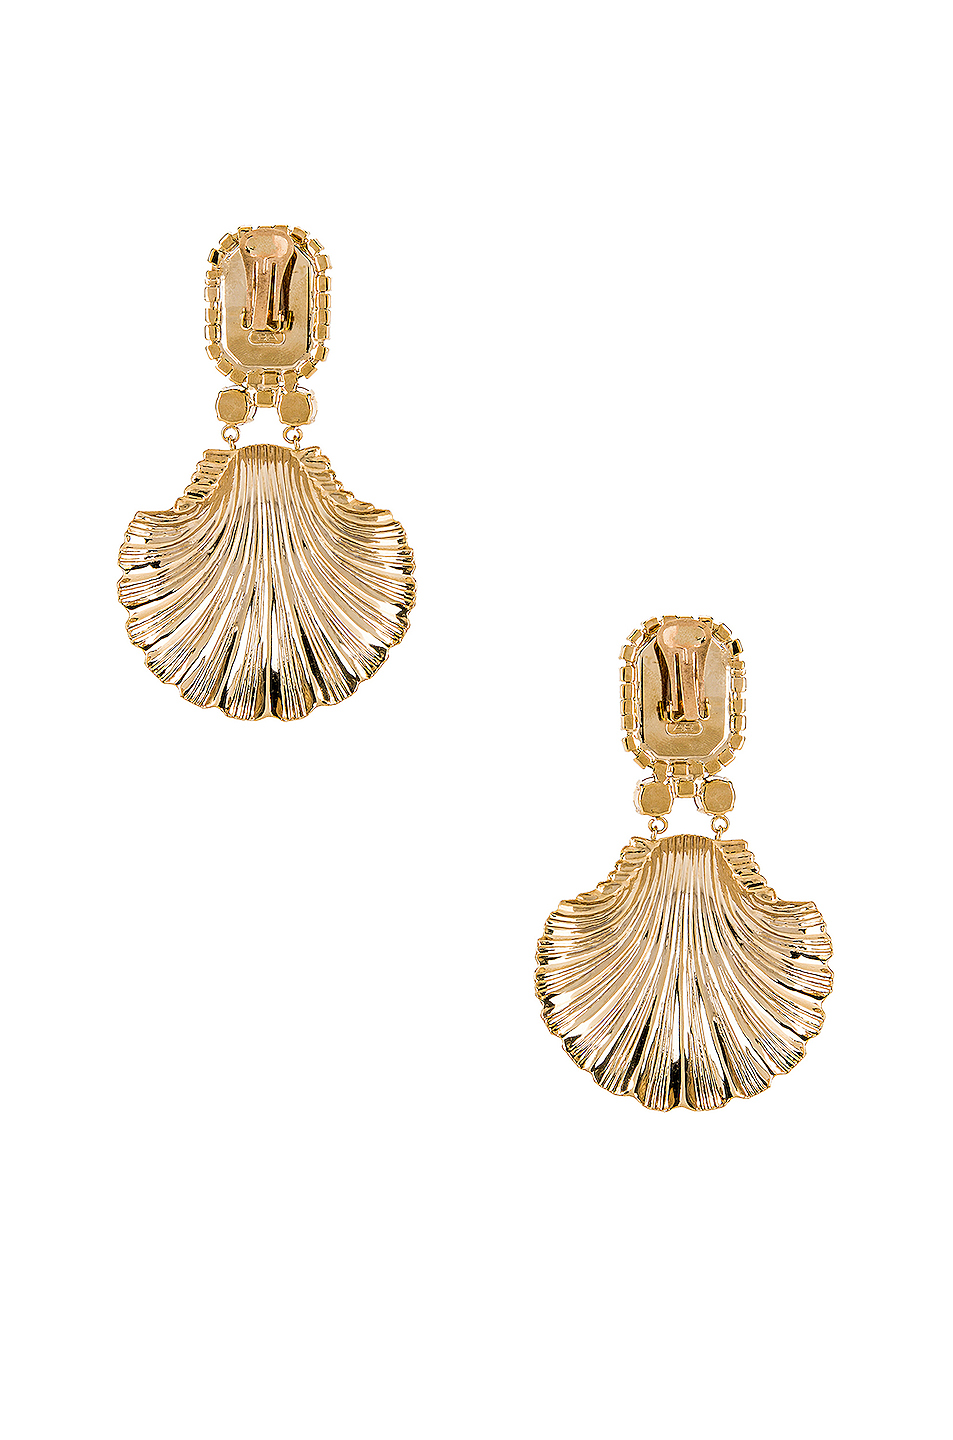 e09df6c046 Buy Original Alessandra Rich Shell Earrings at Indonesia | BOBOBOBO